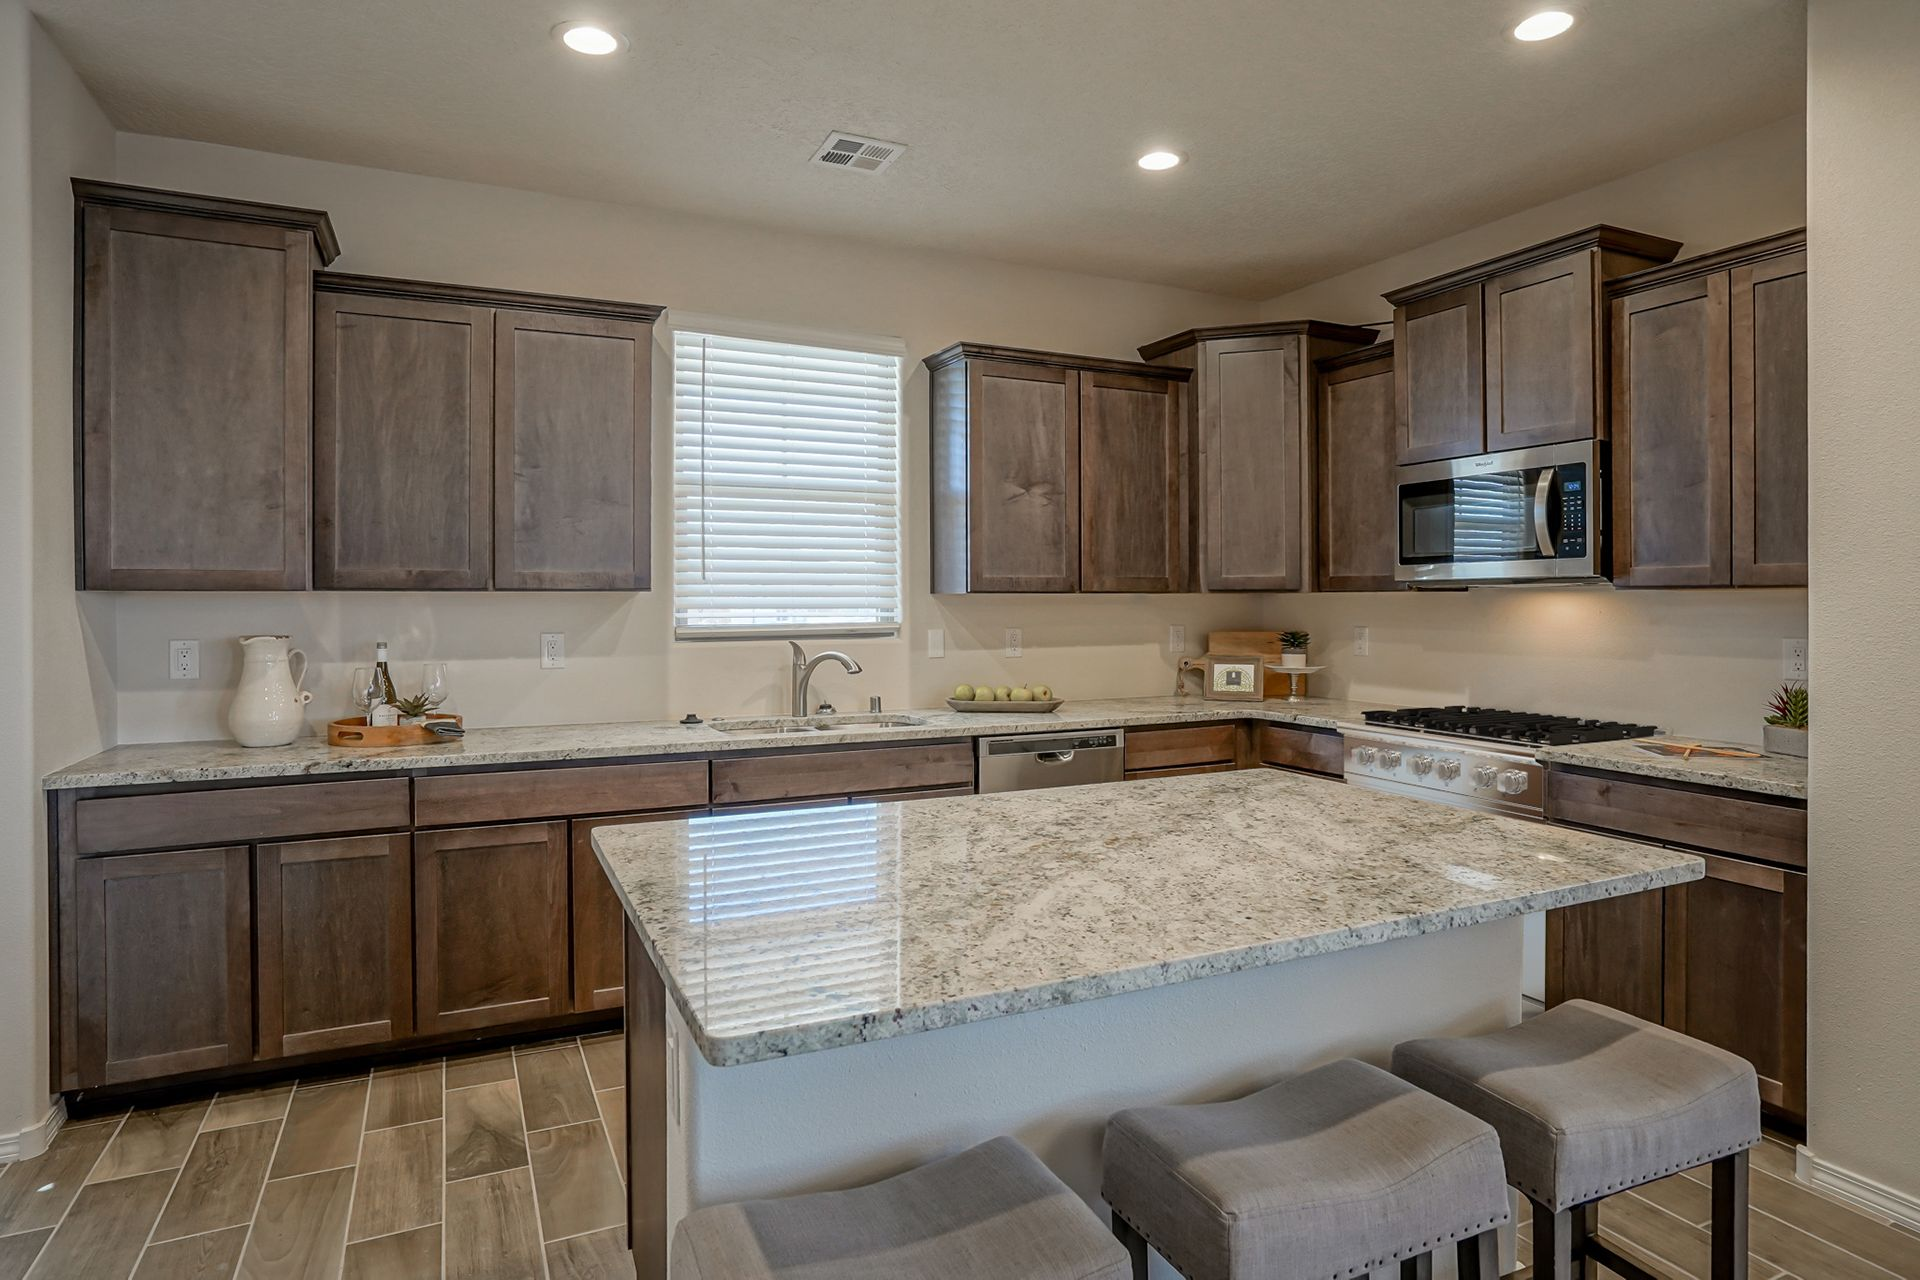 Kitchen featured in The IPA By Abrazo Homes in Albuquerque, NM